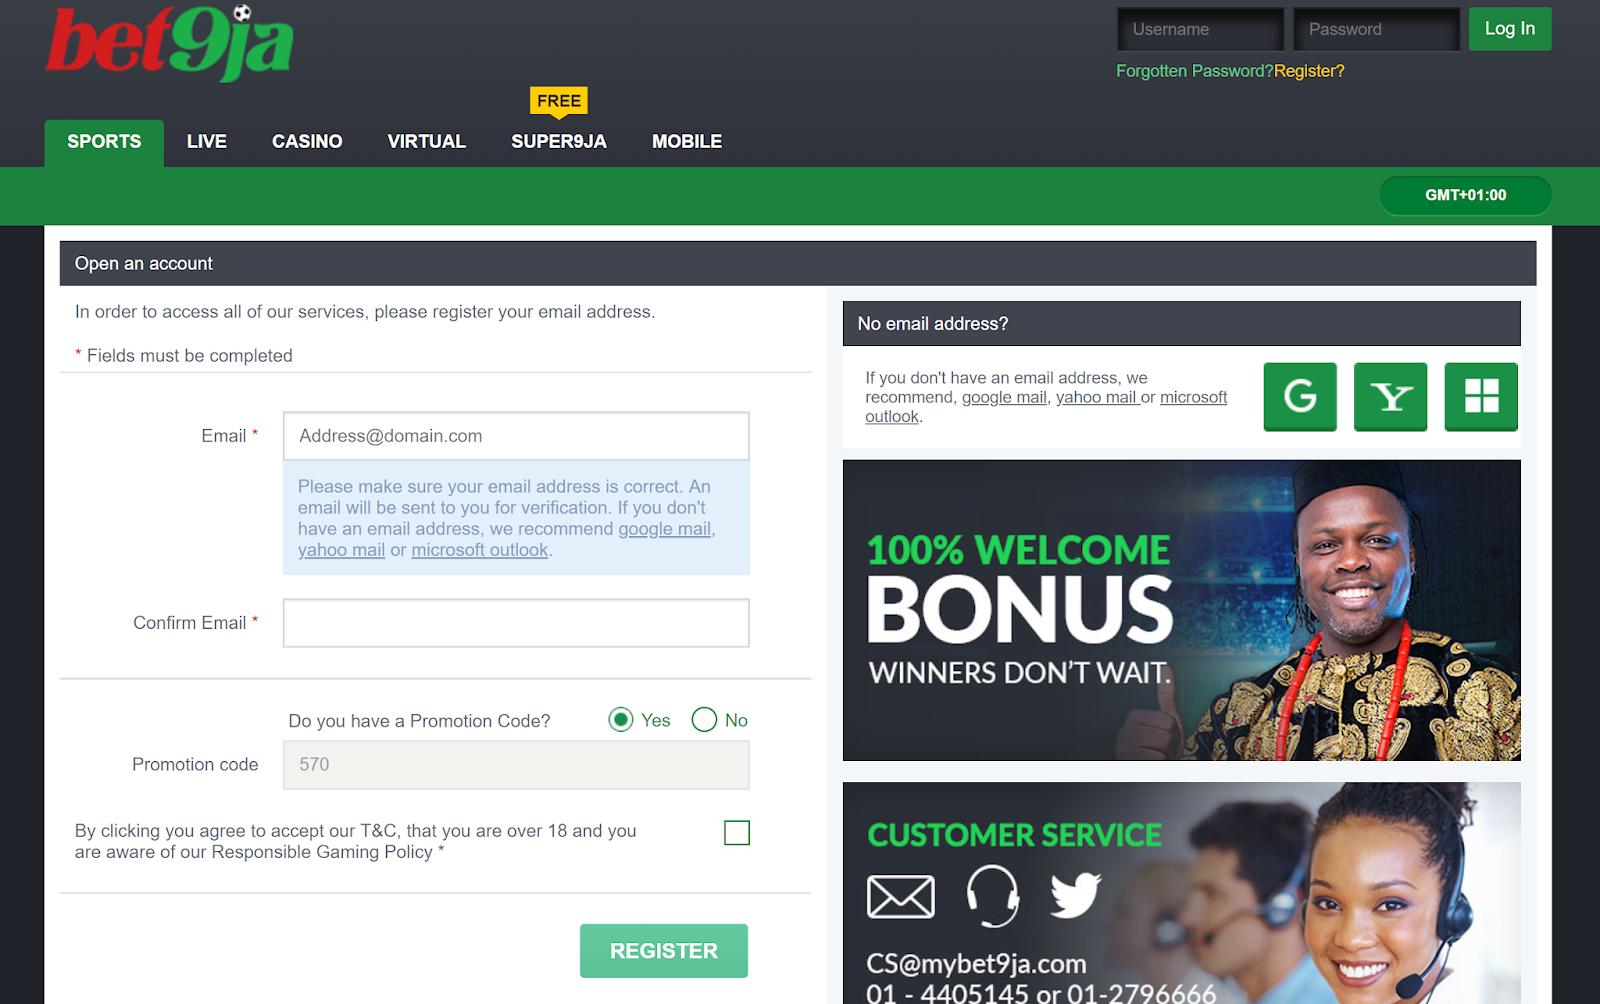 Check Bet9ja Mobile Booking Number